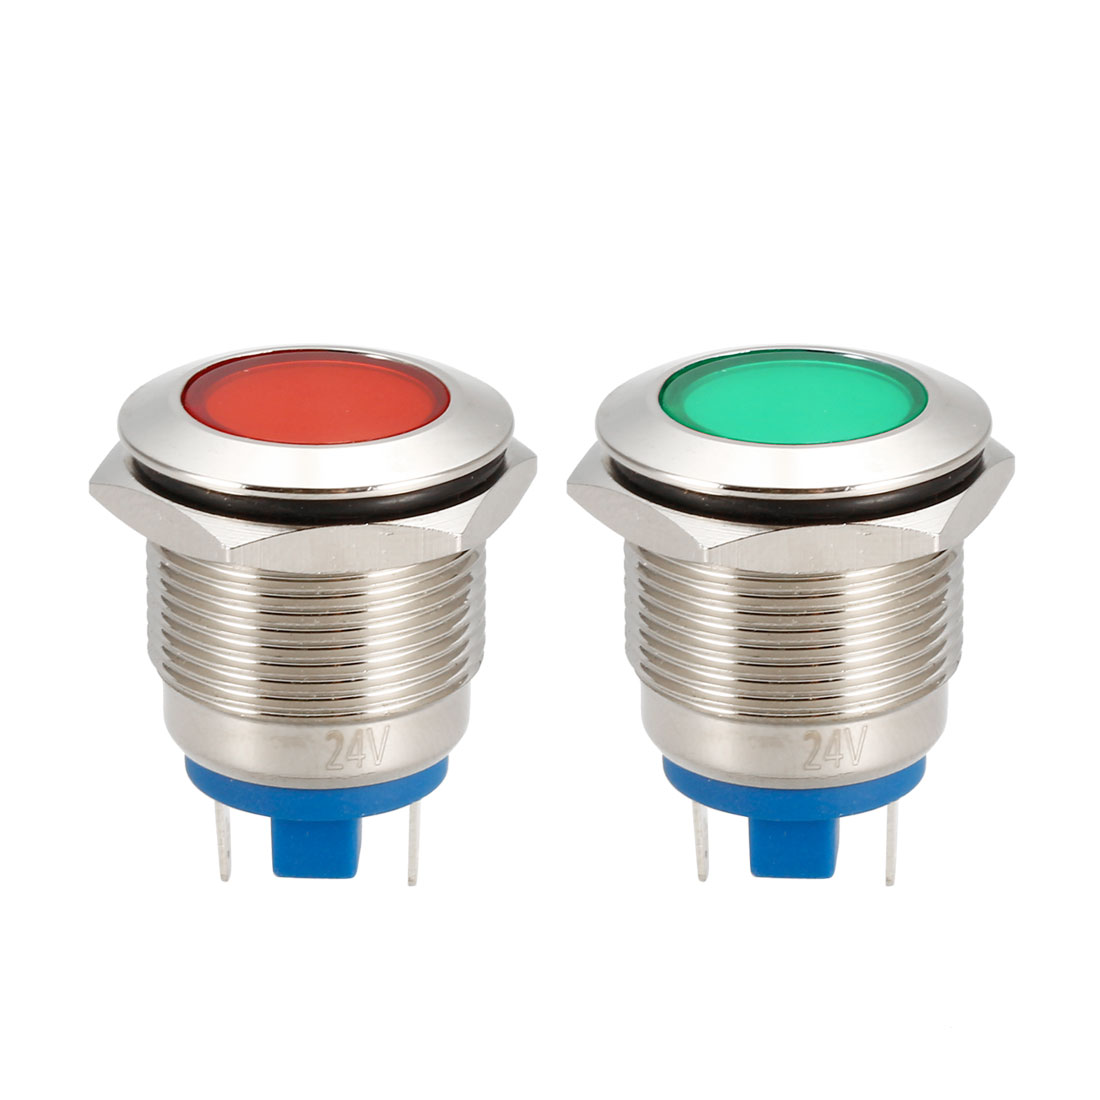 2Pcs 19mm Mounted Thread DC 24V Red Green LED Indicator Light Set